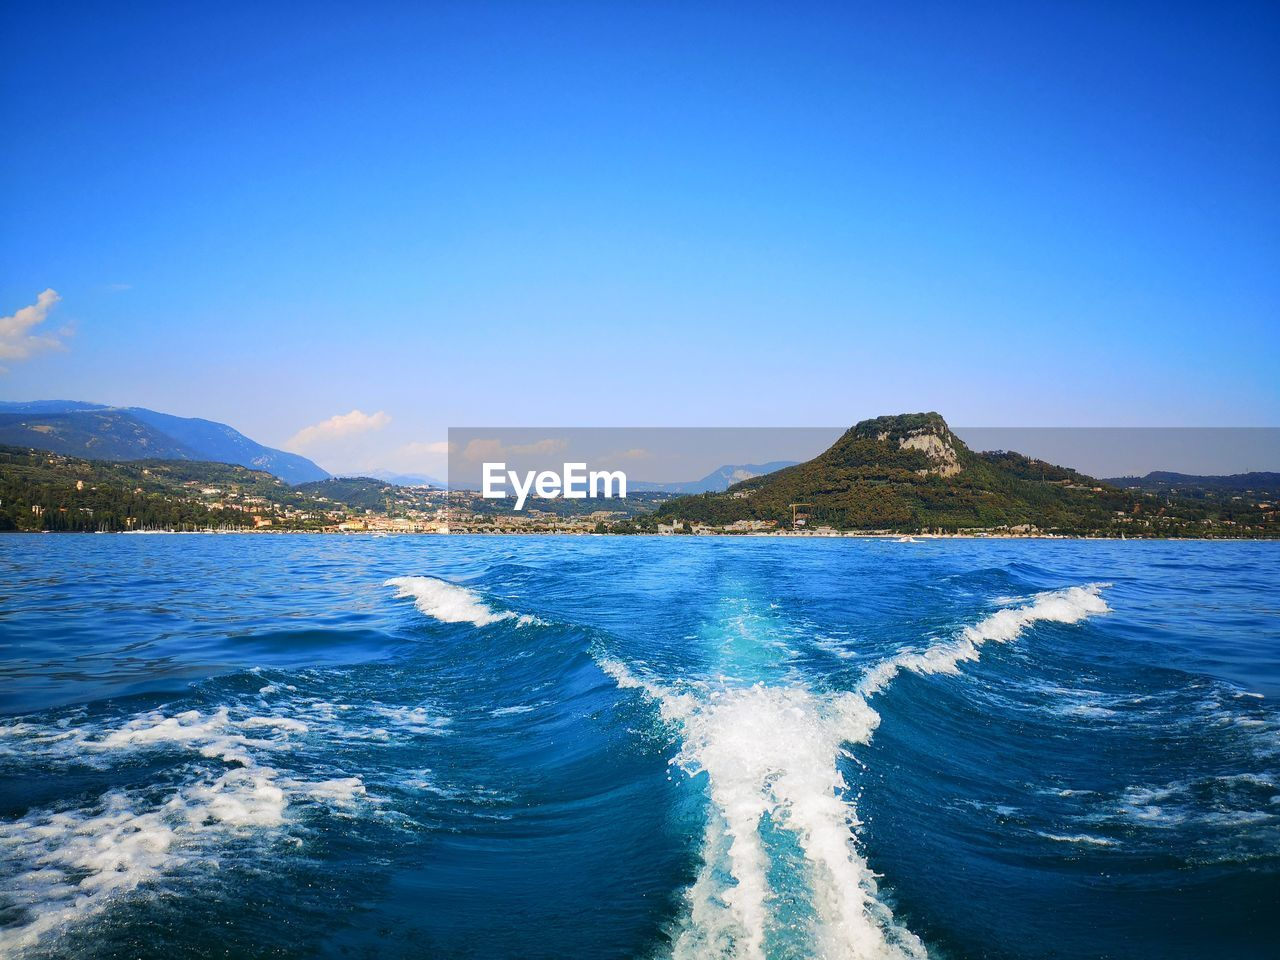 water, sea, beauty in nature, blue, sky, scenics - nature, motion, copy space, mountain, waterfront, no people, wave, nature, aquatic sport, wake - water, clear sky, tranquil scene, idyllic, sport, outdoors